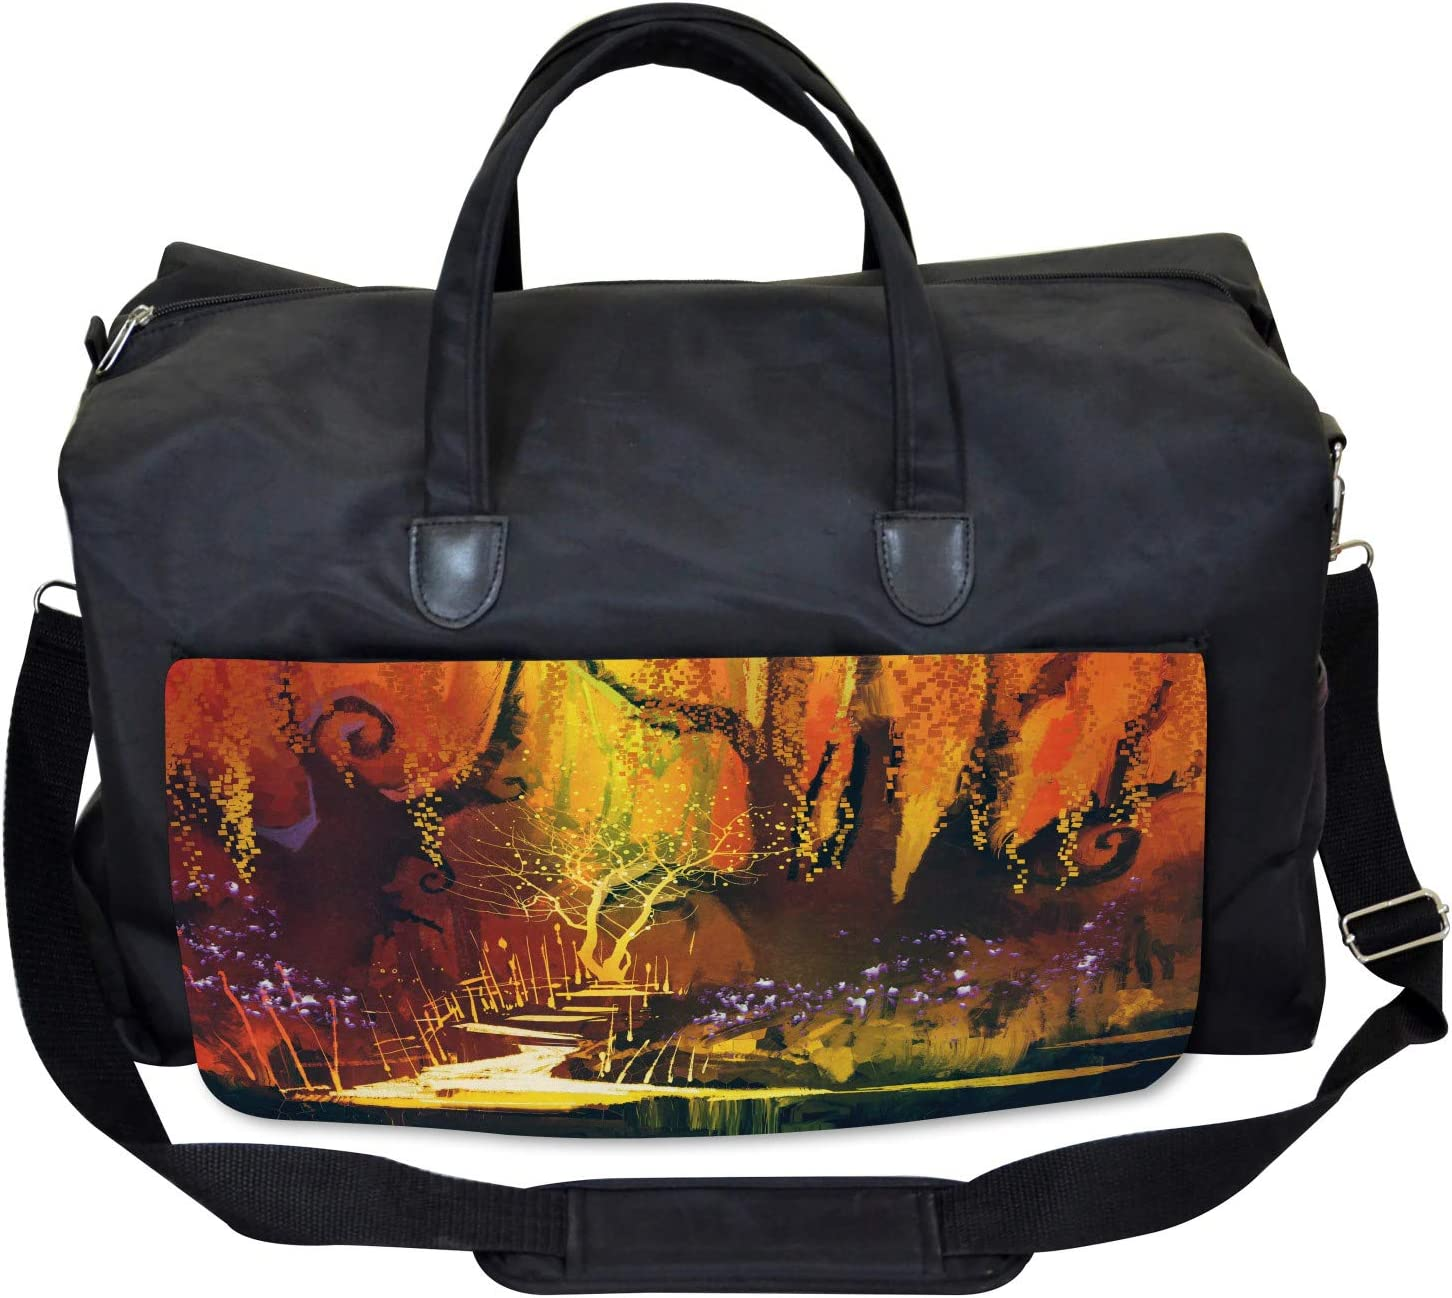 Large Weekender Carry-on Ambesonne Scenery Gym Bag Imaginary Forest View